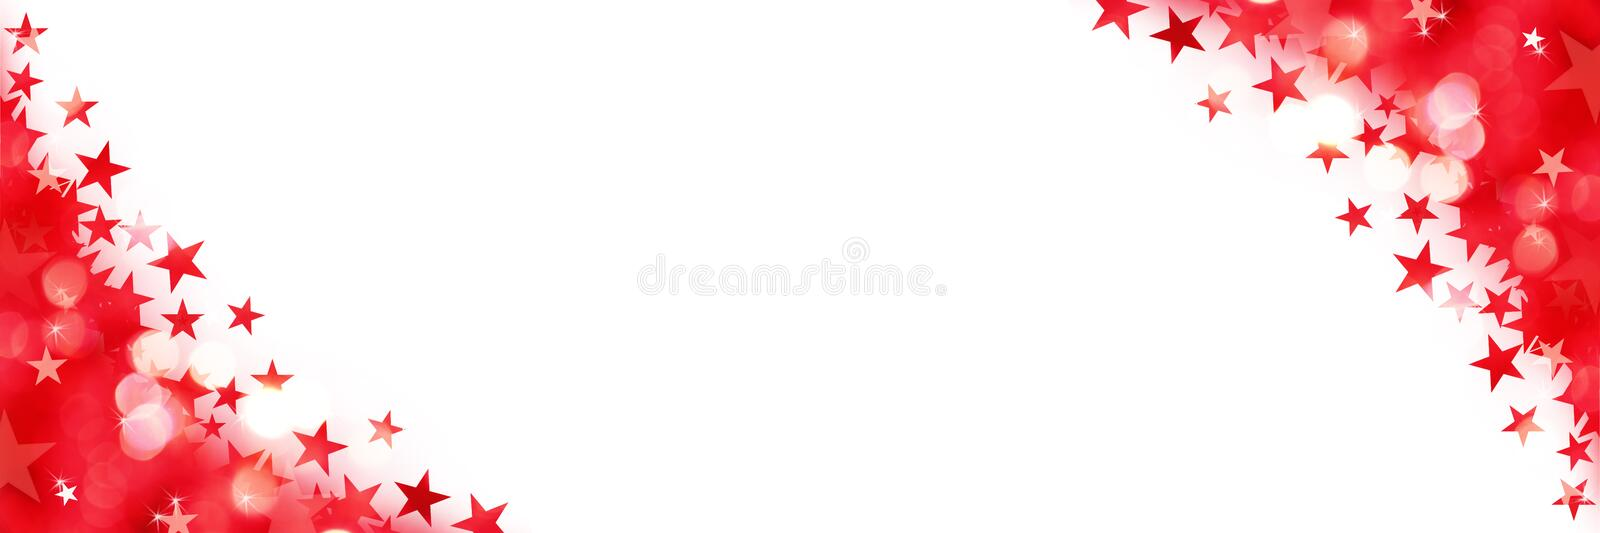 Shiny panoramic background of red lights with stars on white stock illustration